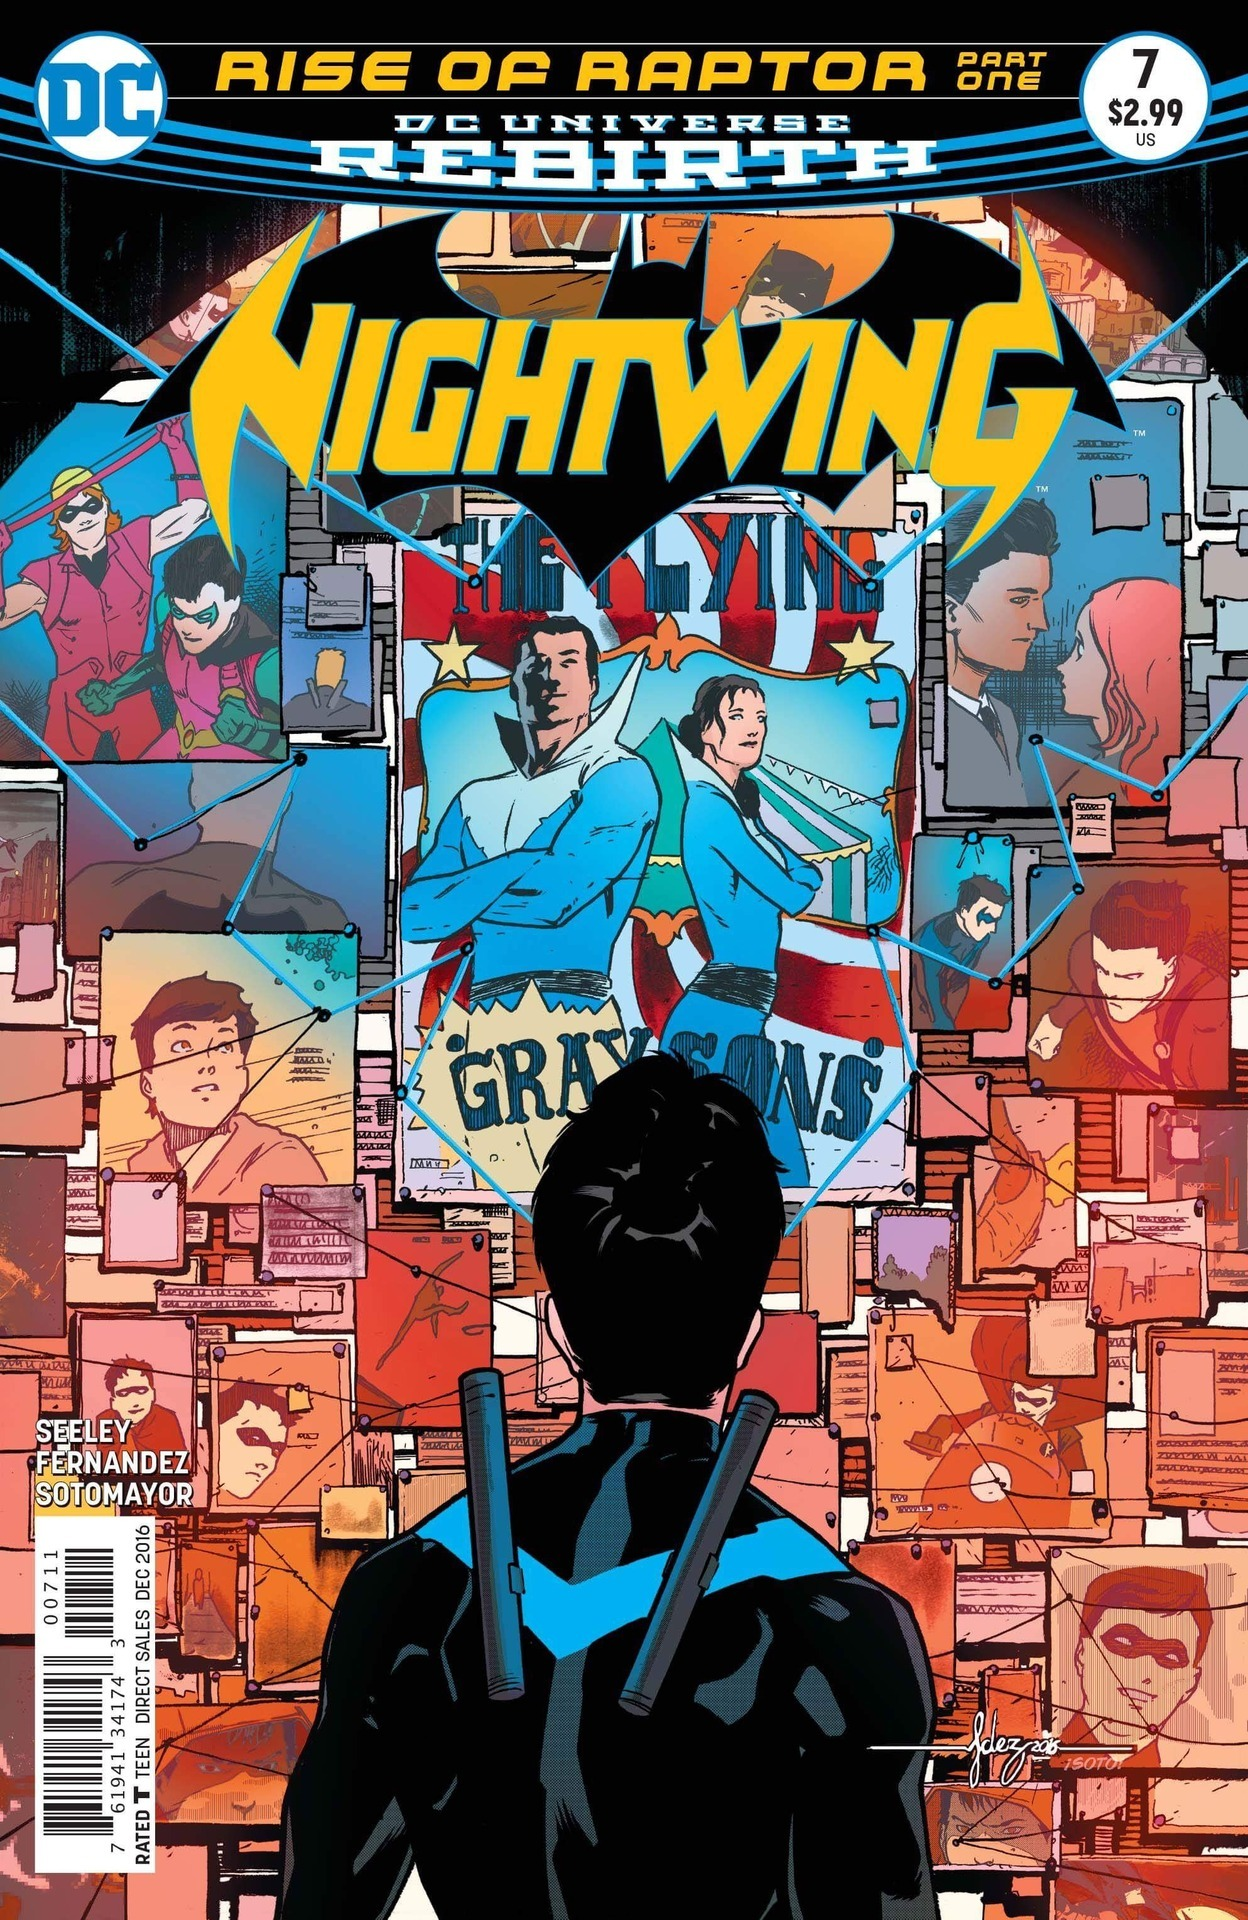 Nightwing  vol. 4 #7 (DC, December 2016), cover